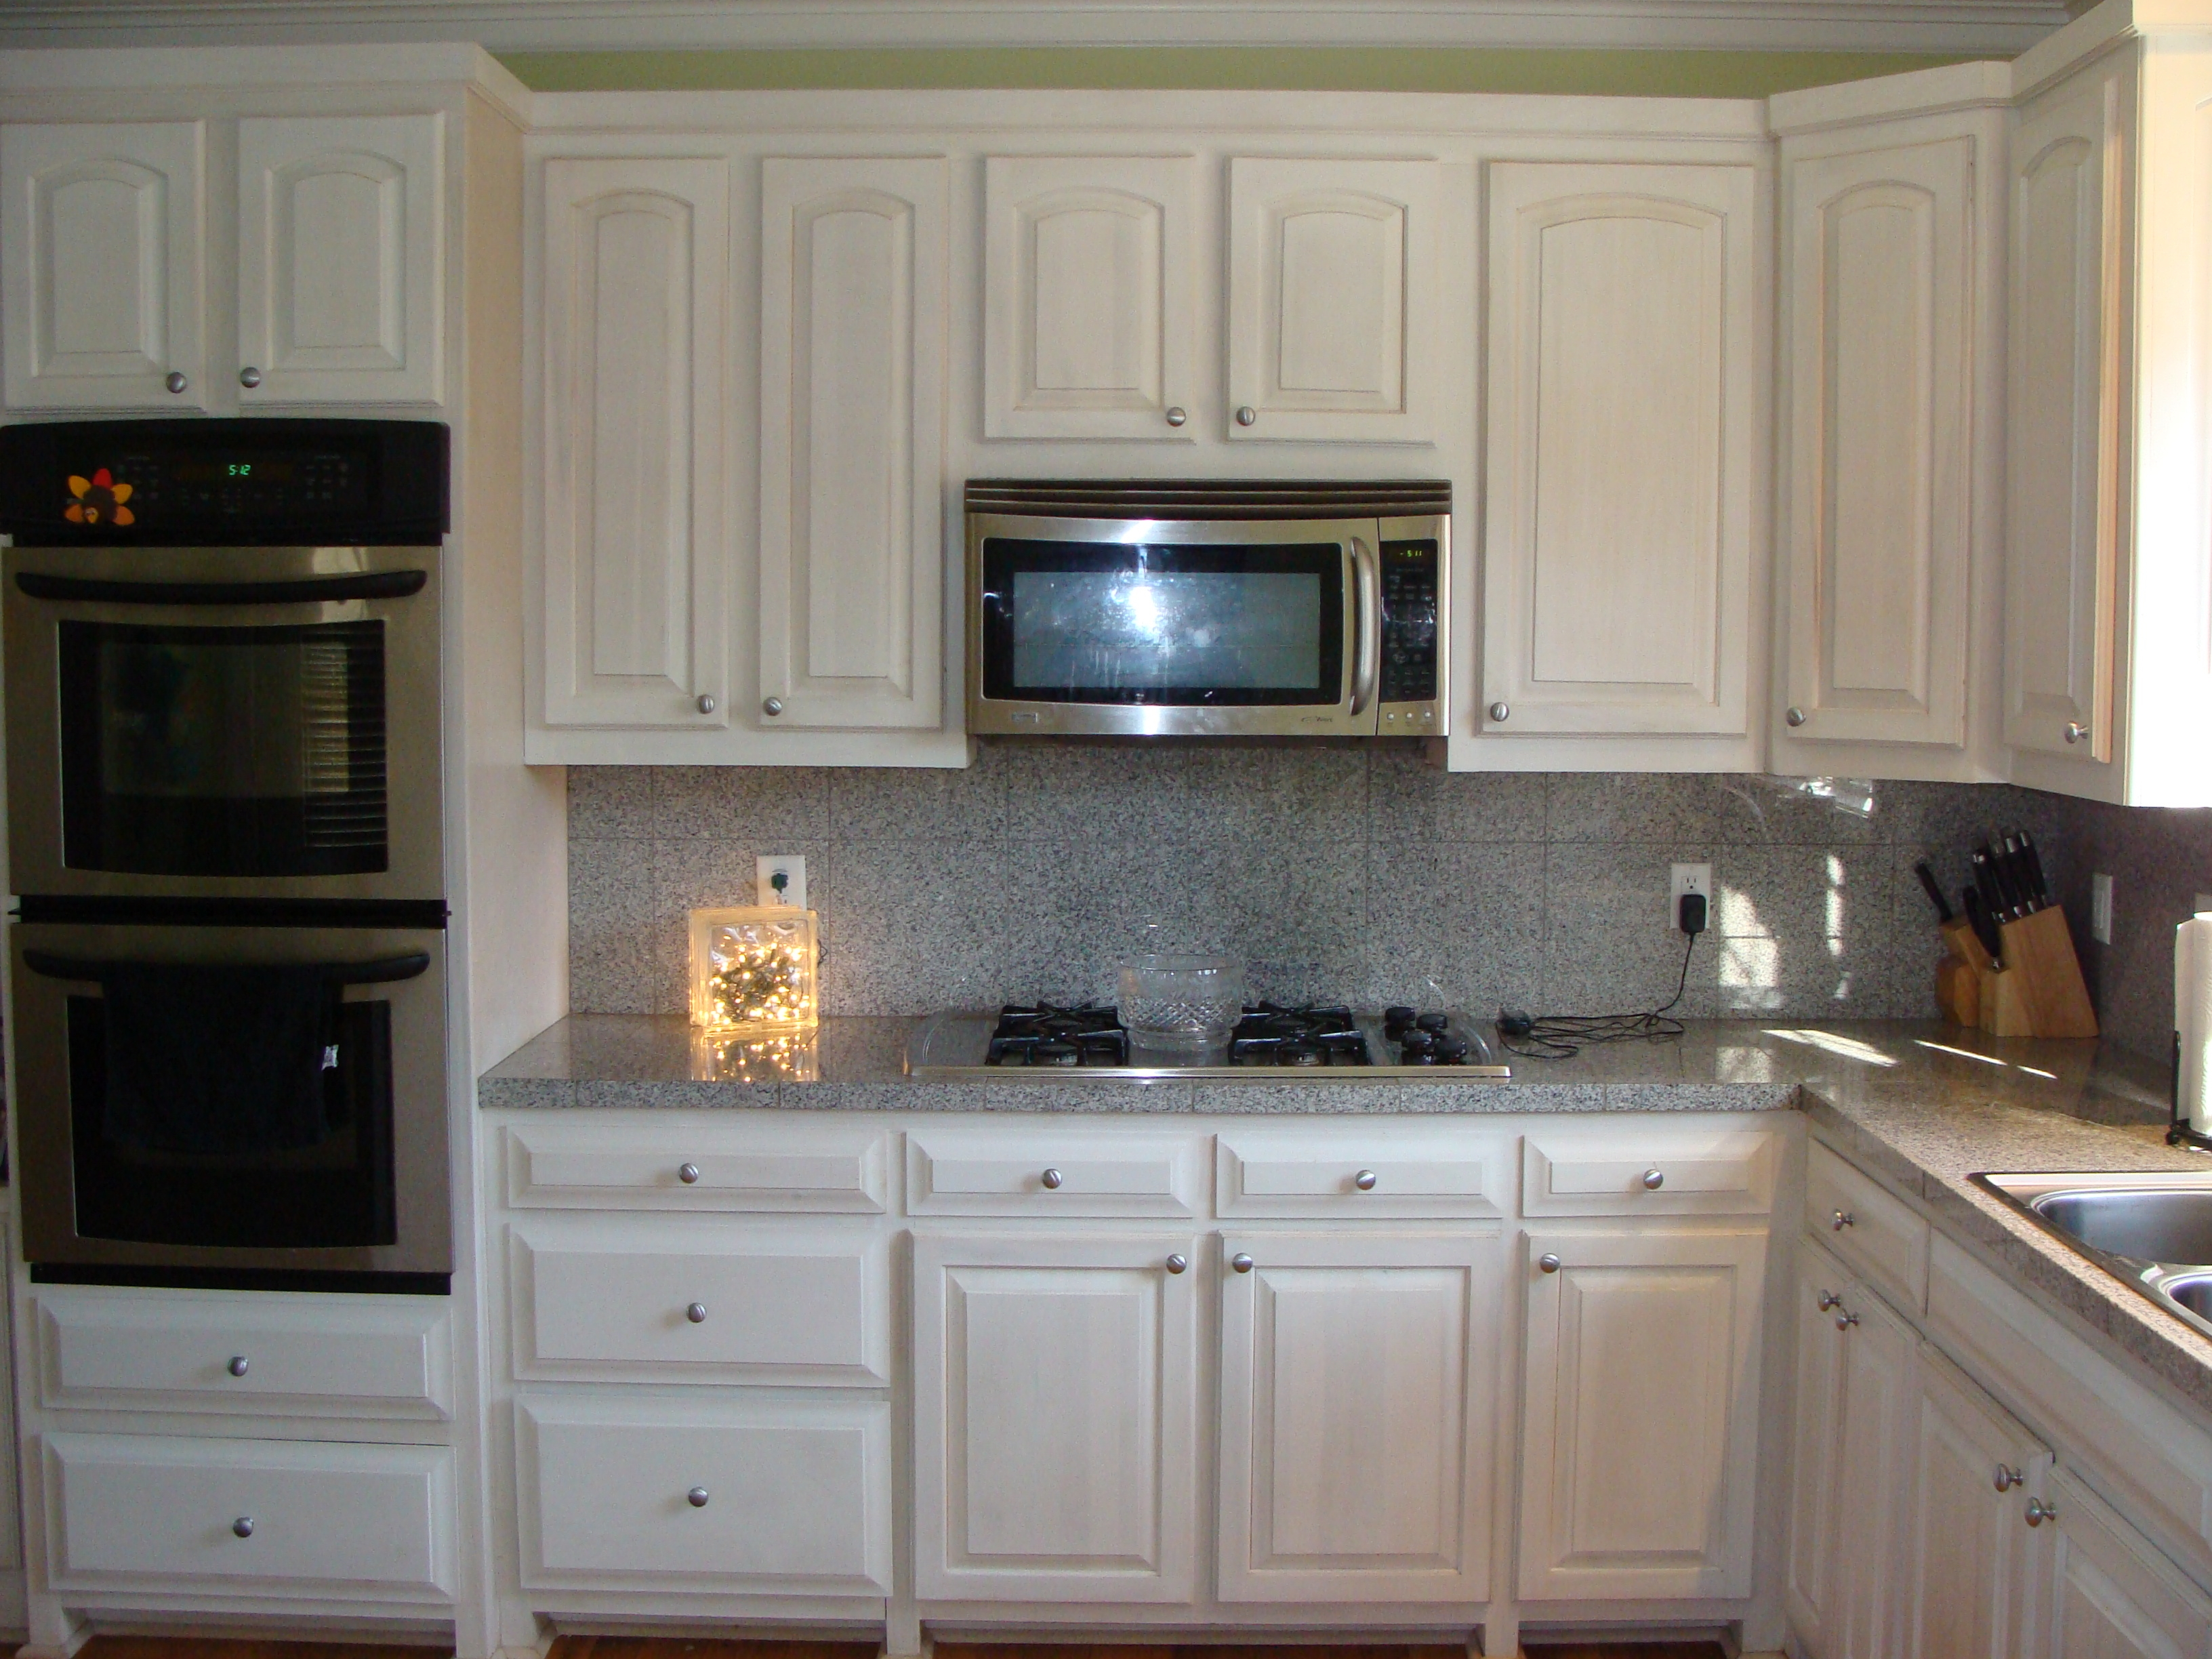 Whitewash Kitchen Cabinets Photoswhite washed cabinets pics roselawnlutheran